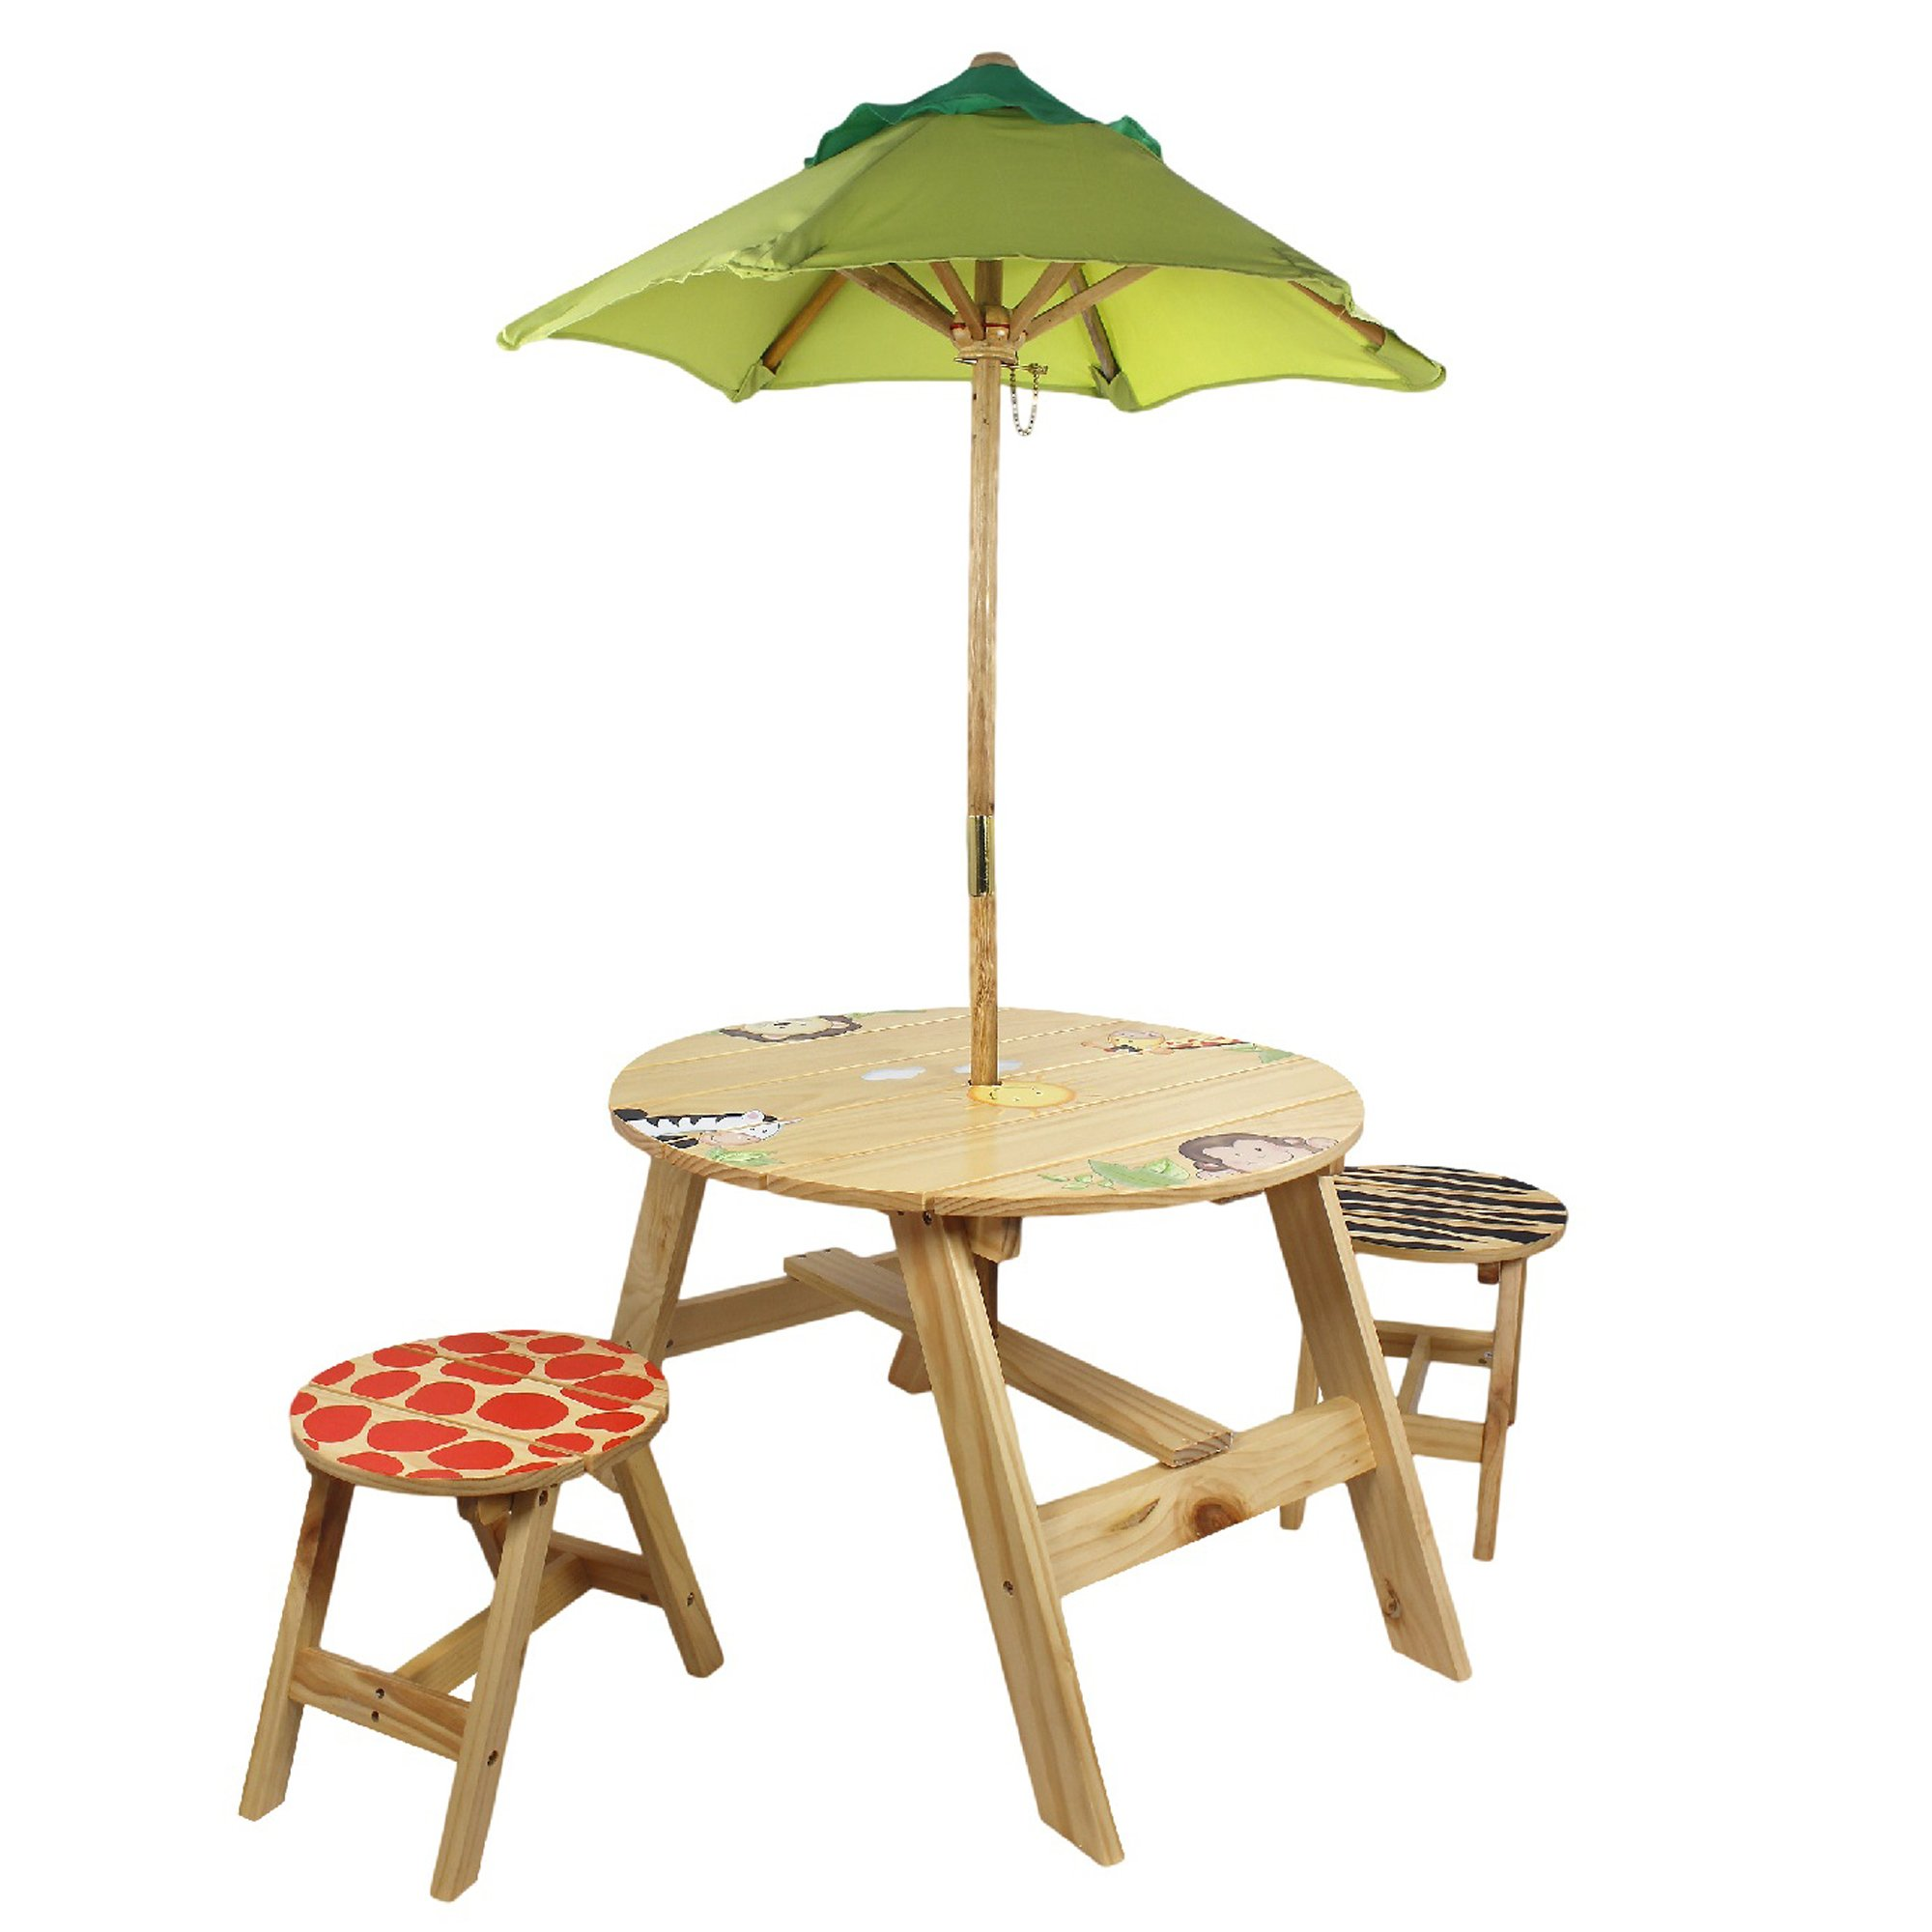 Fantasy Fields - Sunny Safari Animals Thematic Kids Wooden Outdoor Table and 2 Chairs Set |Imagination Inspiring Hand Crafted & Hand Painted Details   Non-Toxic, Lead Free Water-based Paint